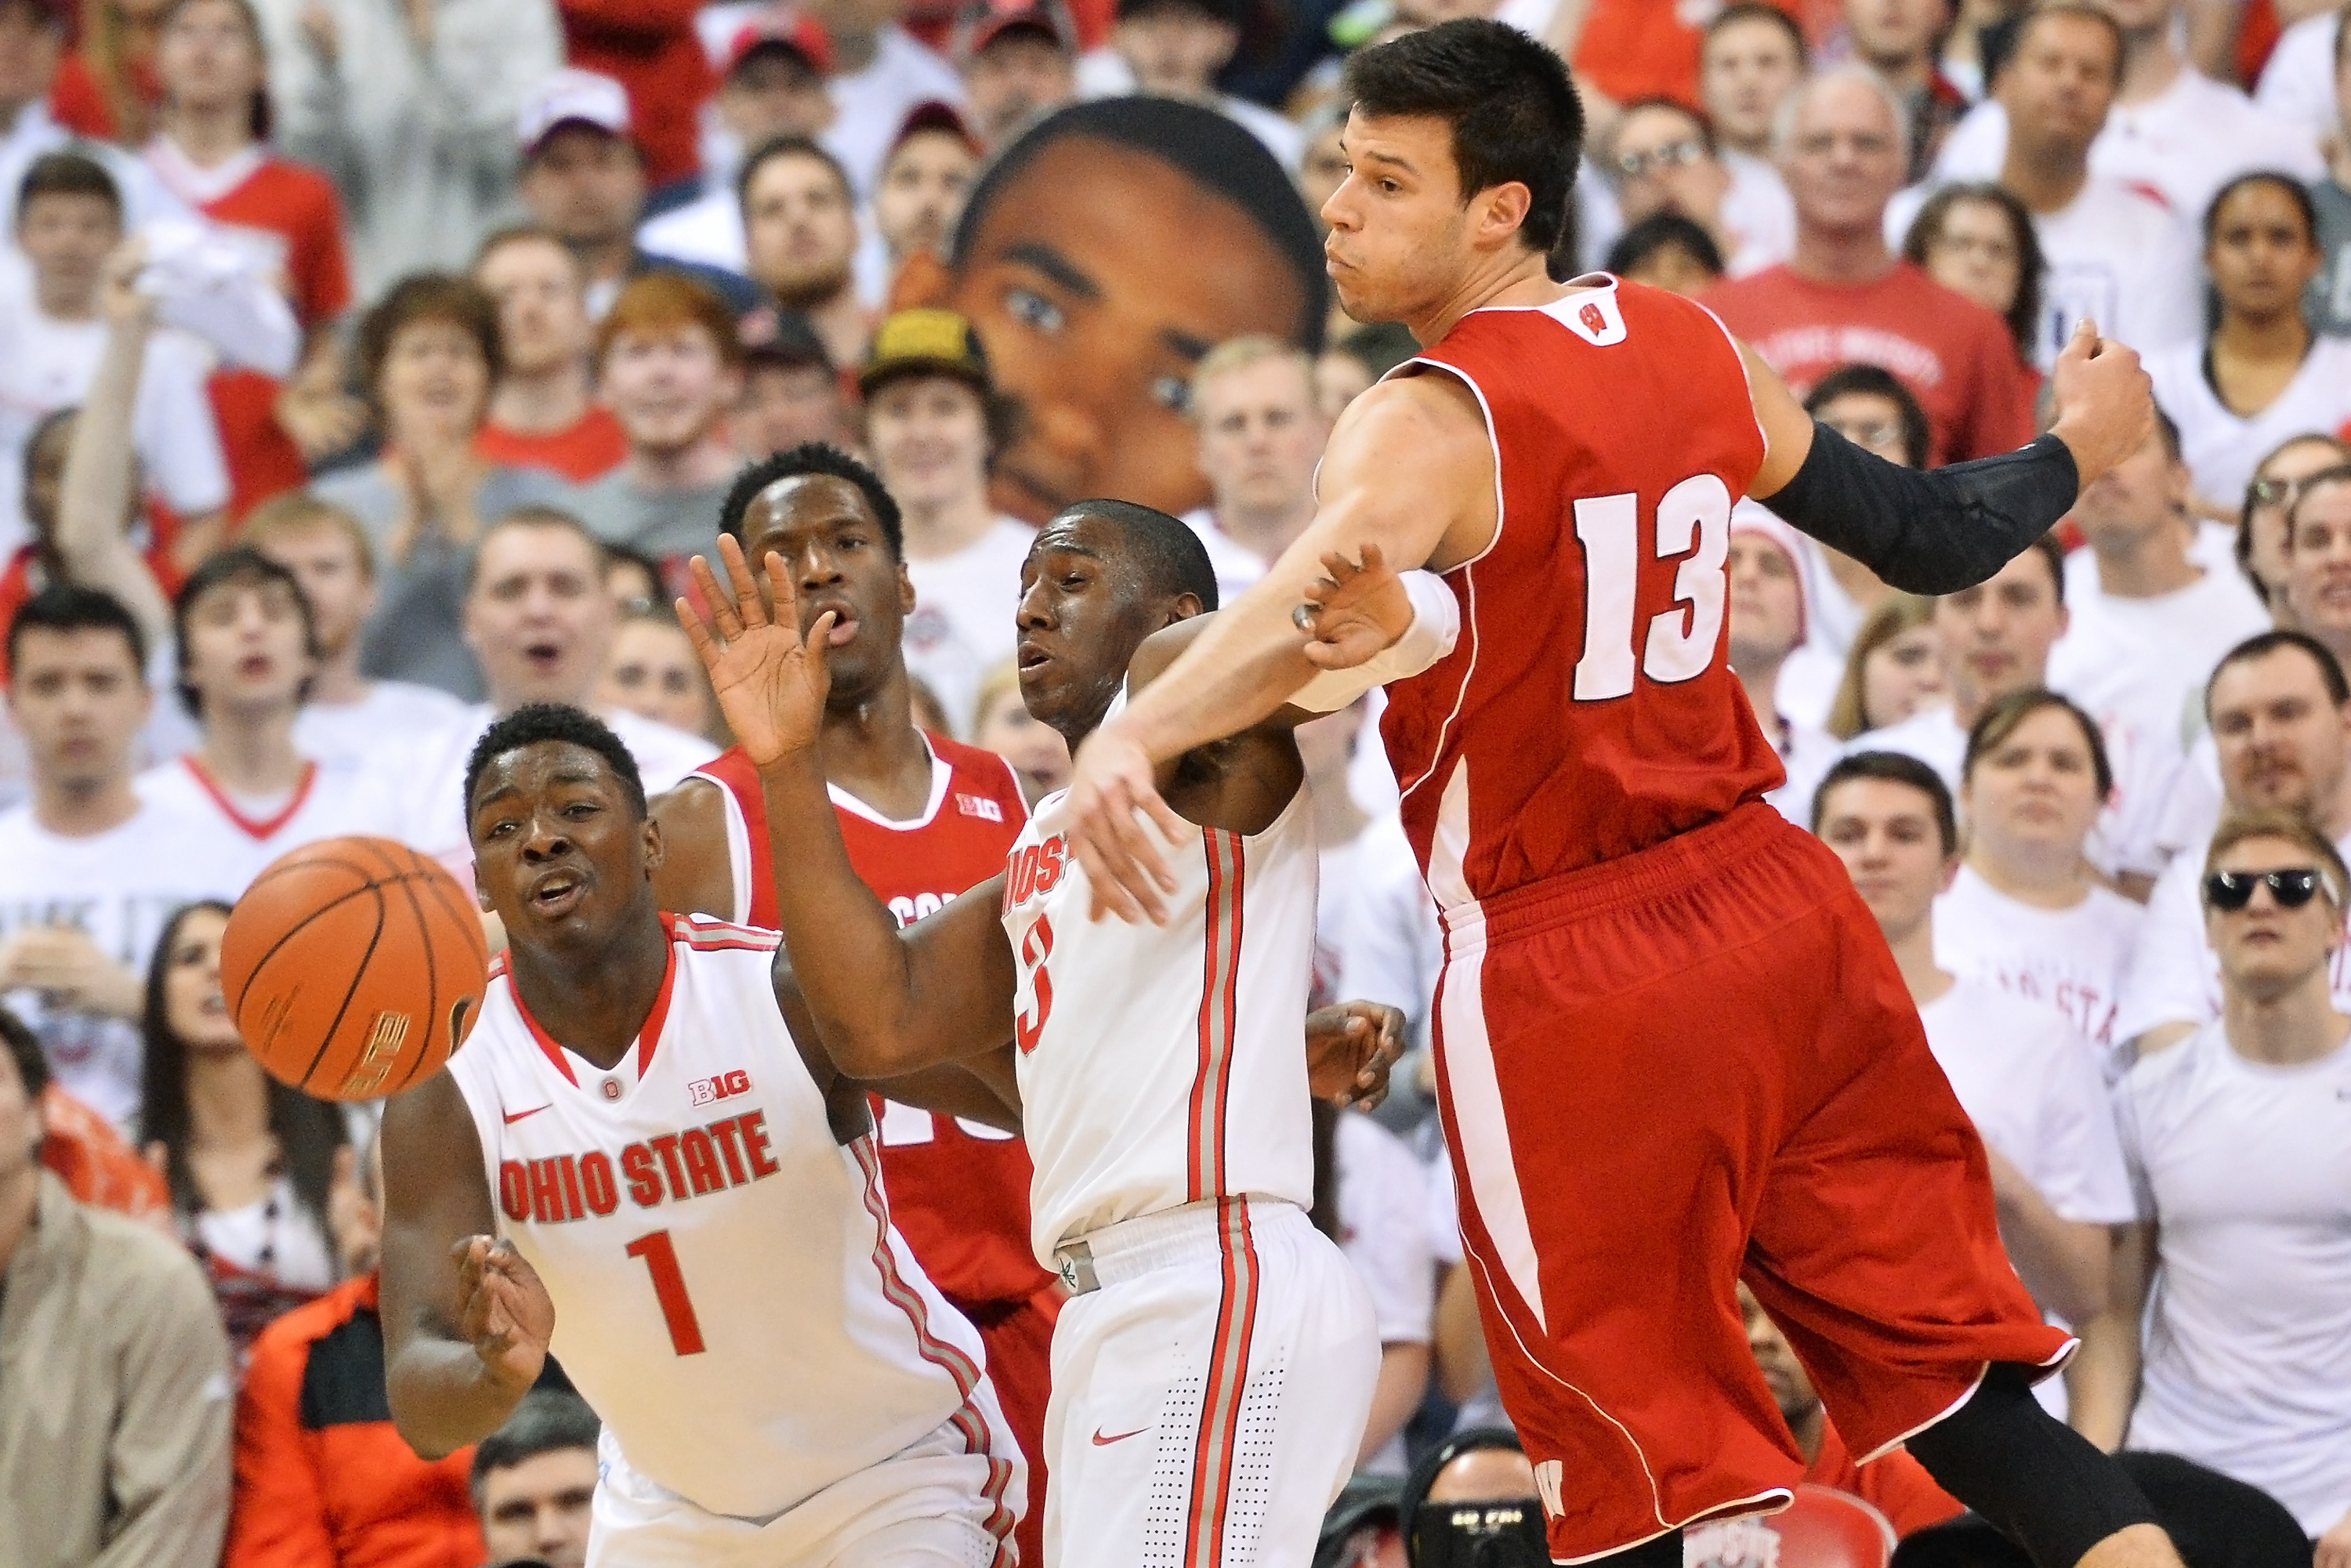 COLUMBUS, OH - MARCH 8:  Jae'Sean Tate #1 of the Ohio State Buckeyes and Shannon Scott #3 of the Ohio State Buckeyes battle for control of a loose ball with Duje Dukan #13 of the Wisconsin Badgers in the second half on March 8, 2015 at Value City Arena in Columbus, Ohio.  Wisconsin defeated Ohio State 72-48.  (Photo by Jamie Sabau/Getty Images)